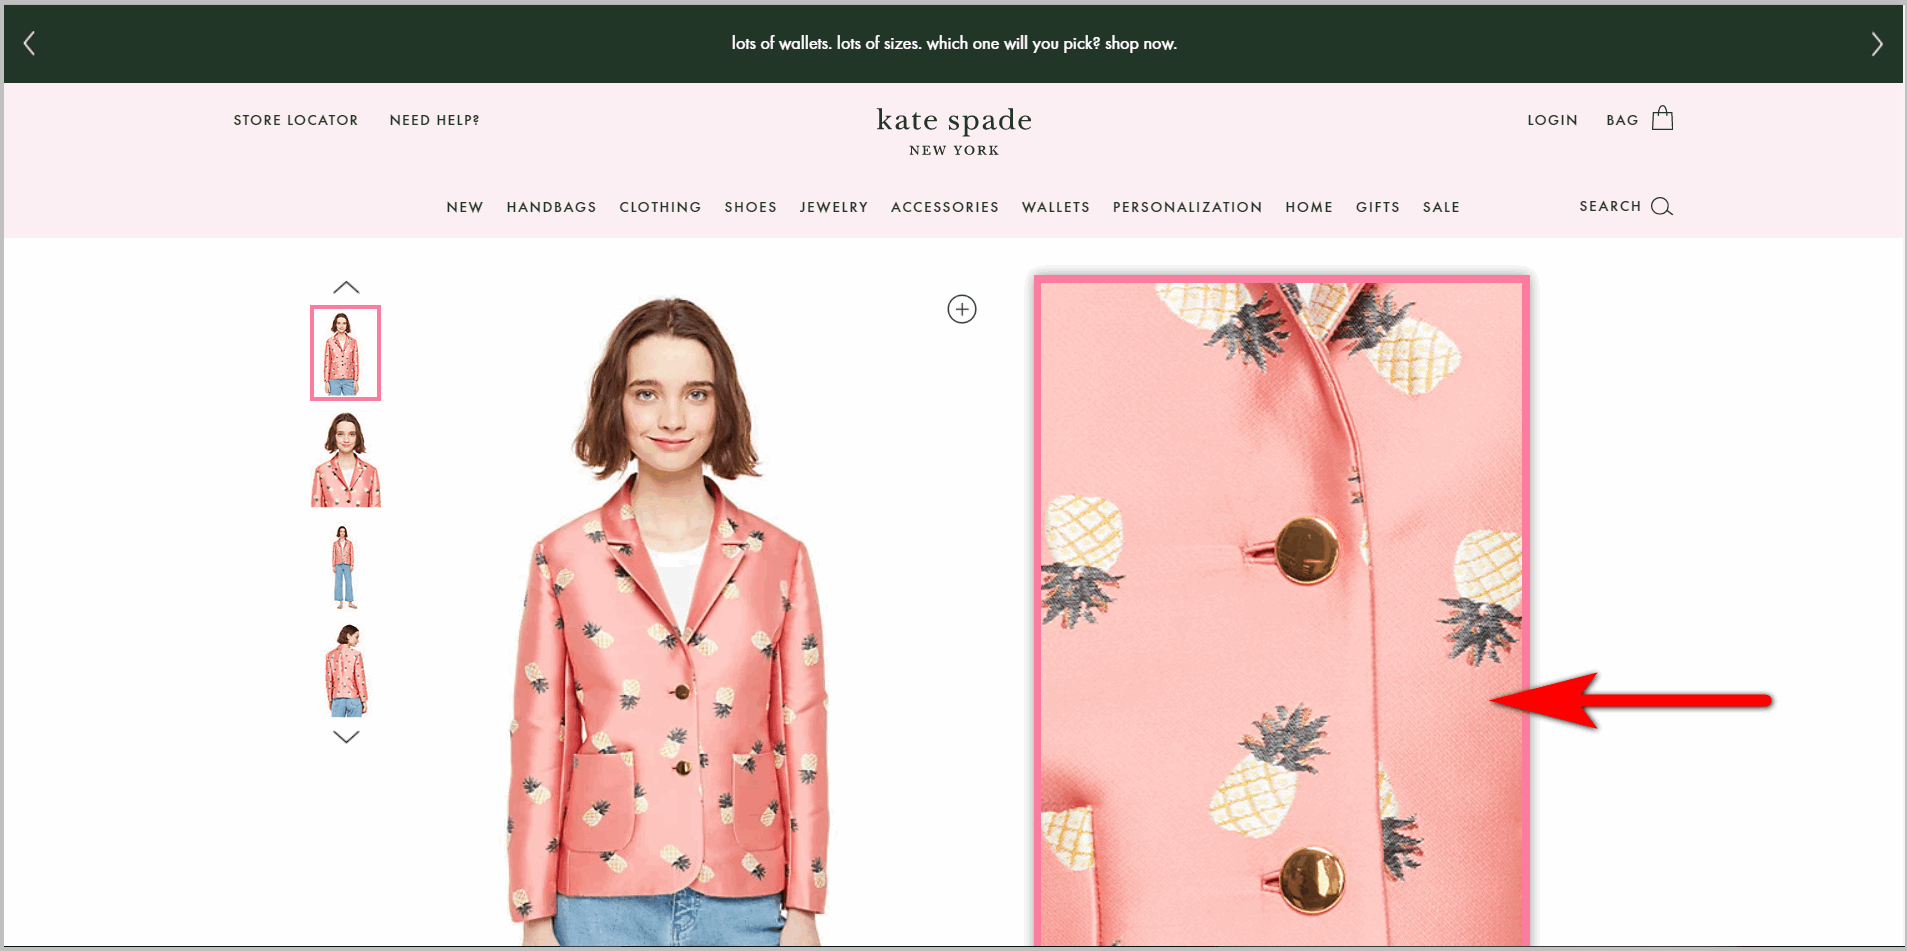 covering the CTA block example - katespade.com pdp's action block gets covered by a modal when the user zooms in on the image